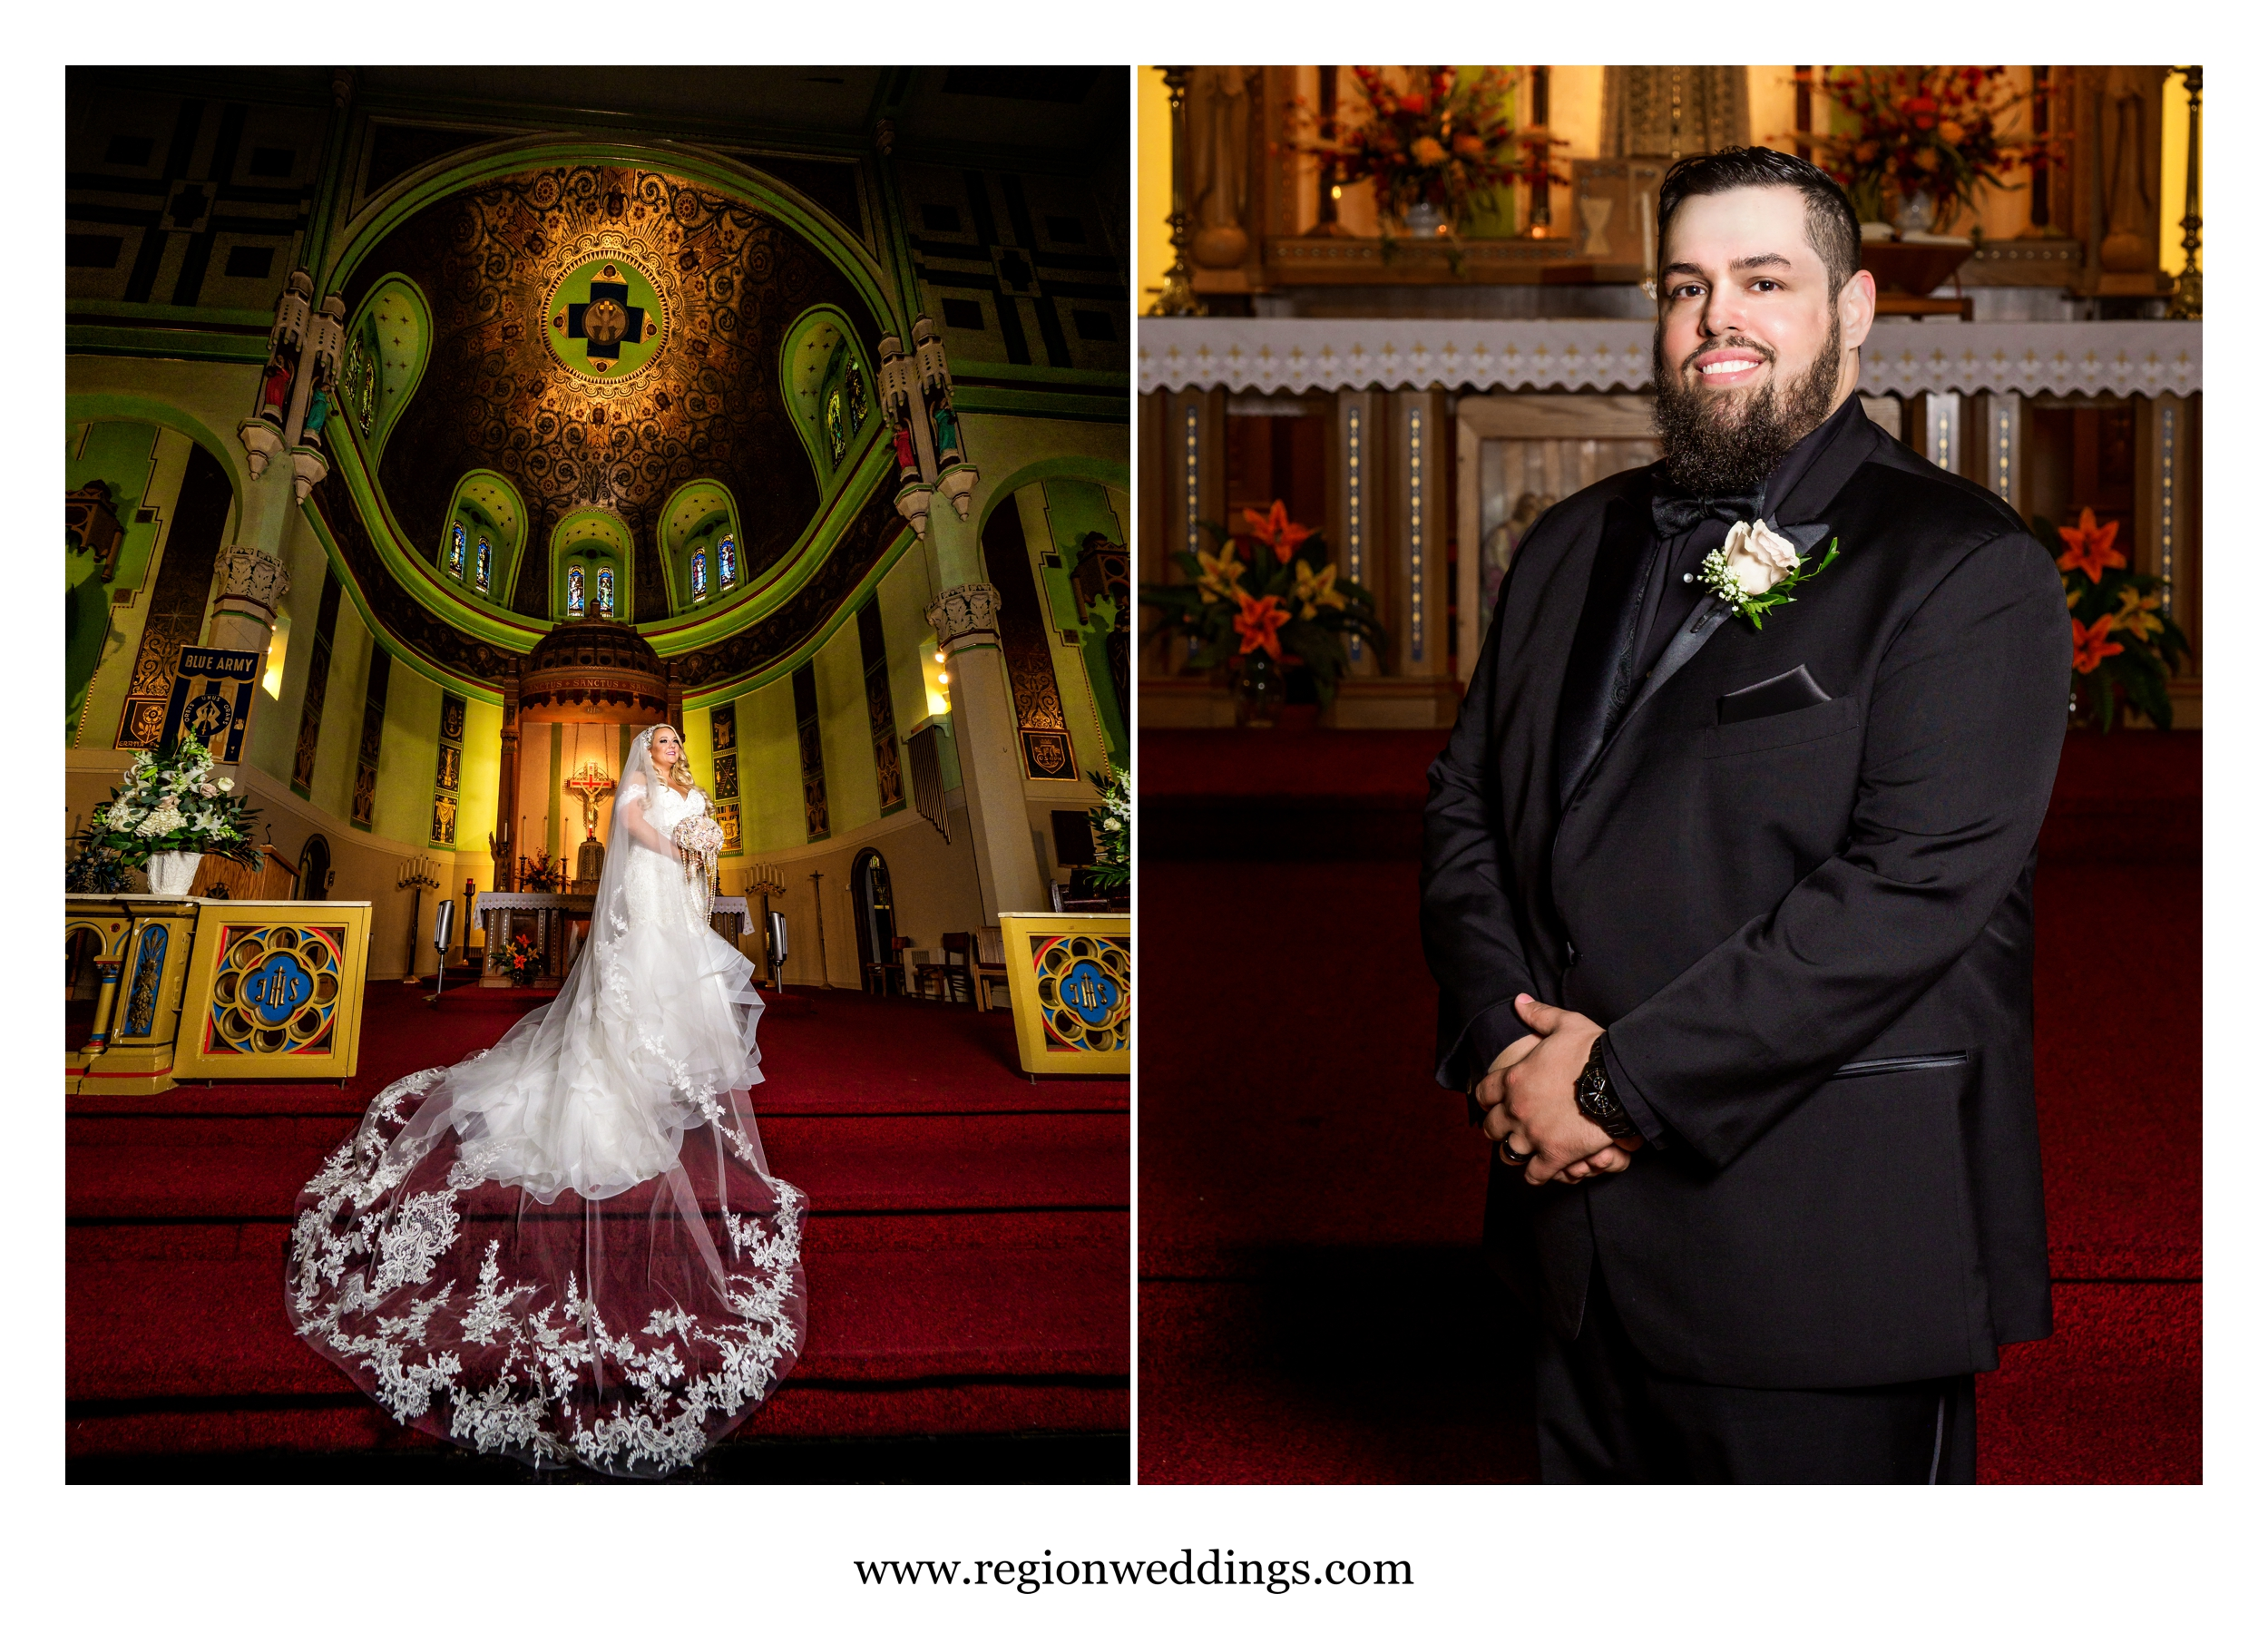 Bride and groom solo portraits on the altar at St. Stanislaus Kostka Catholic Church.